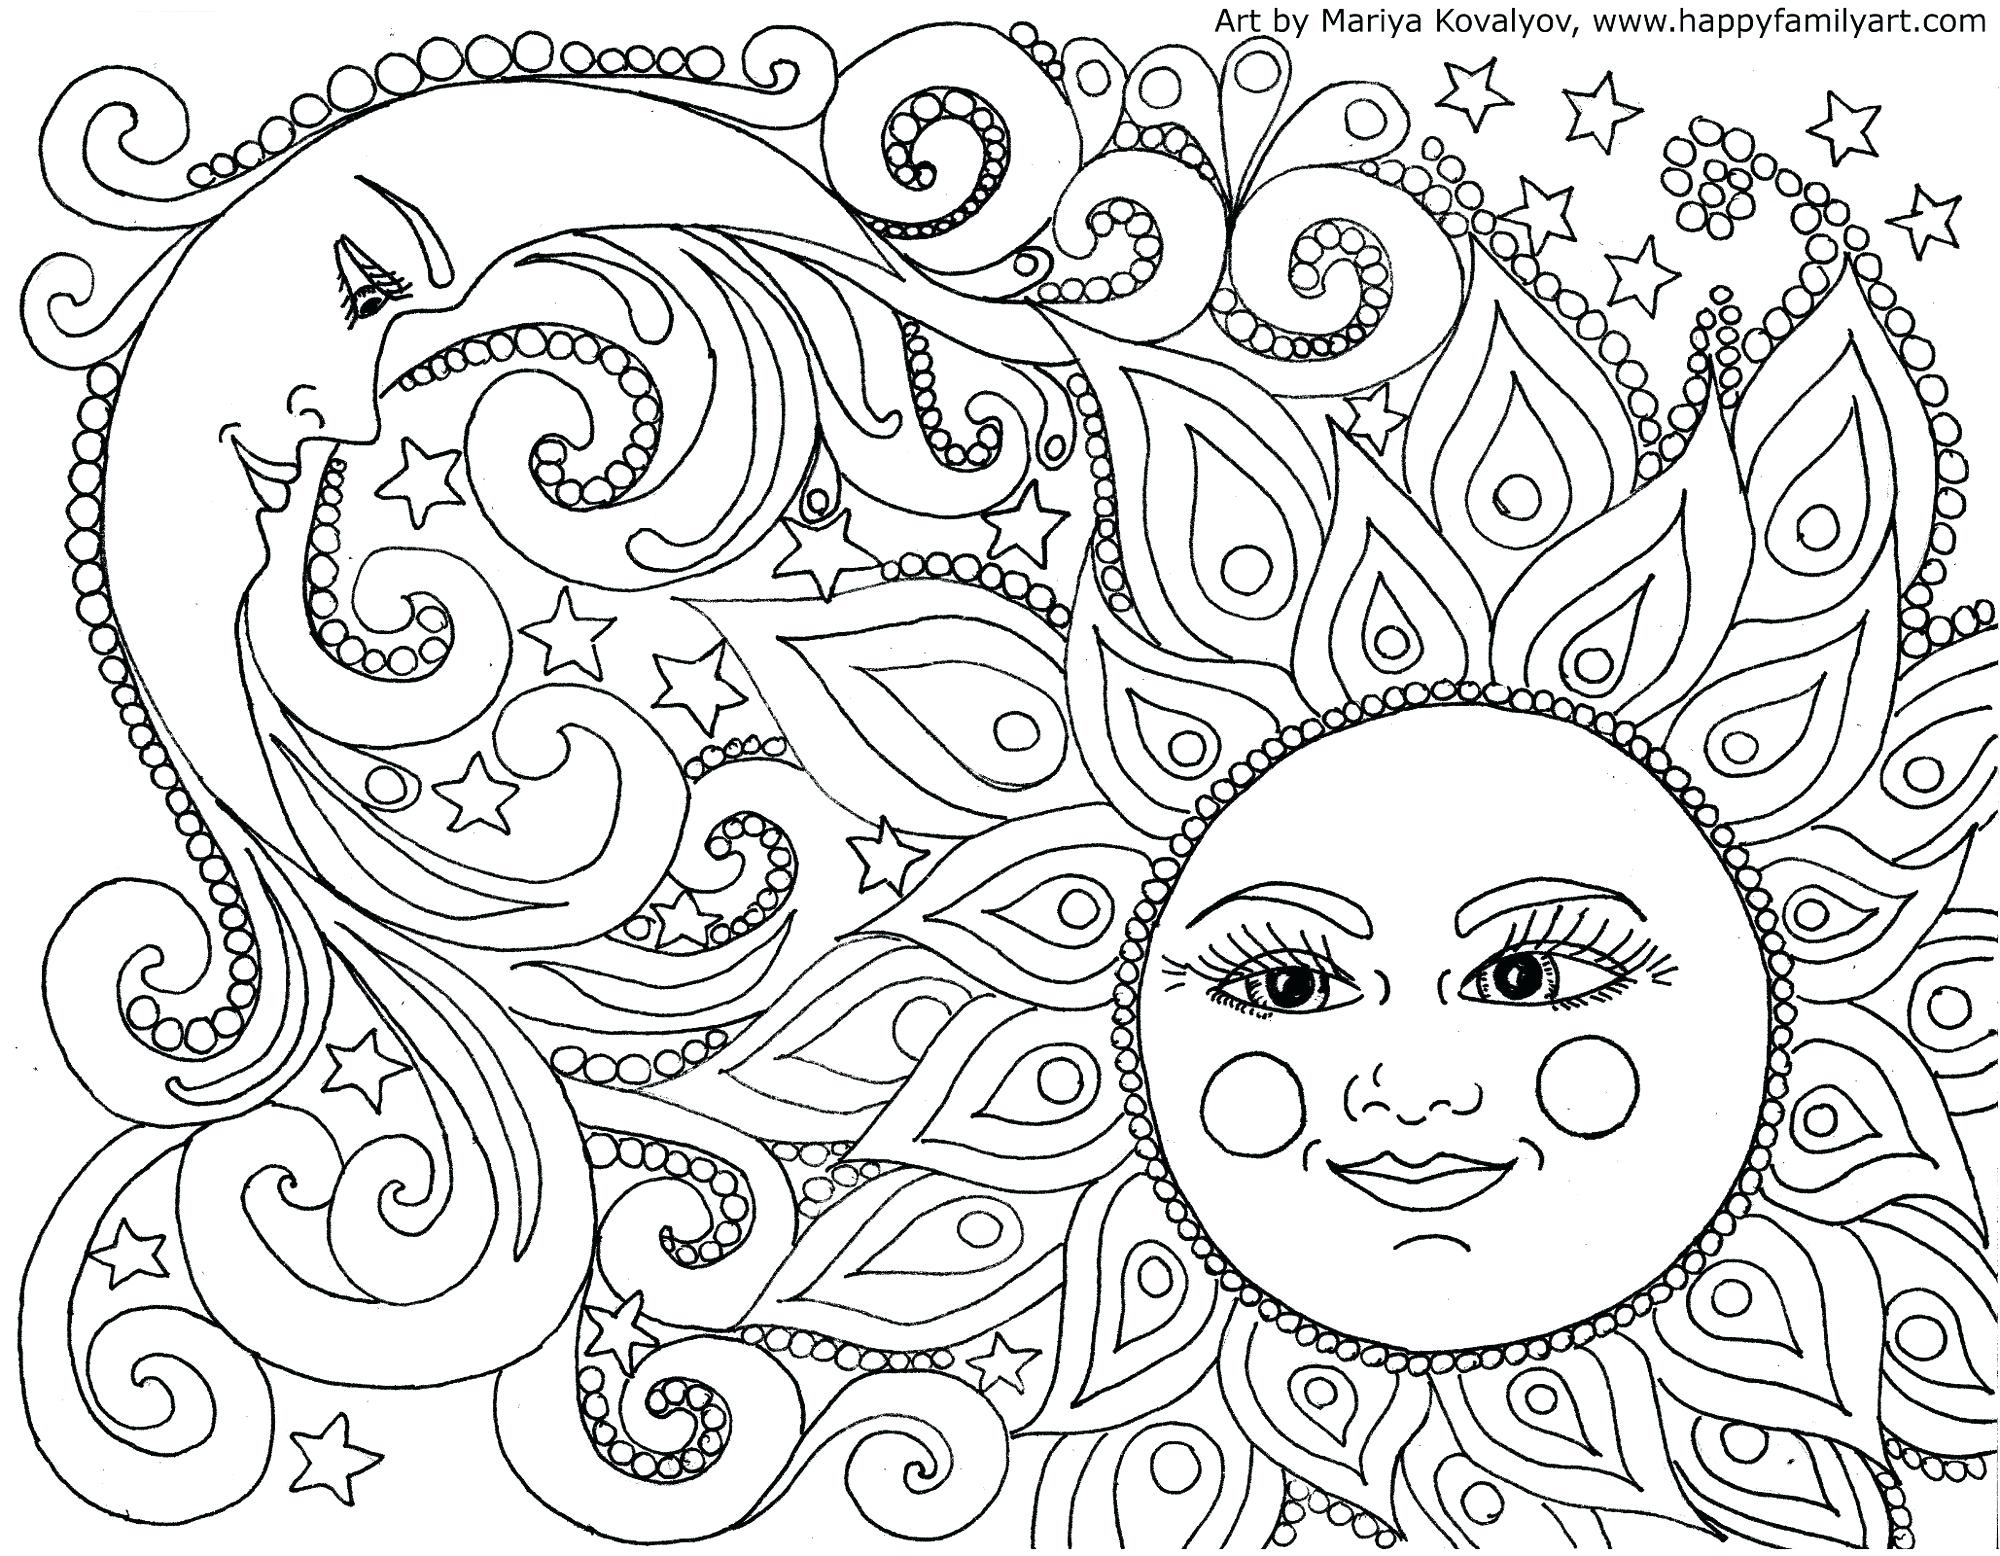 2000x1556 Free Coloring Pages Printable For Adults Kids Halloween Lovely